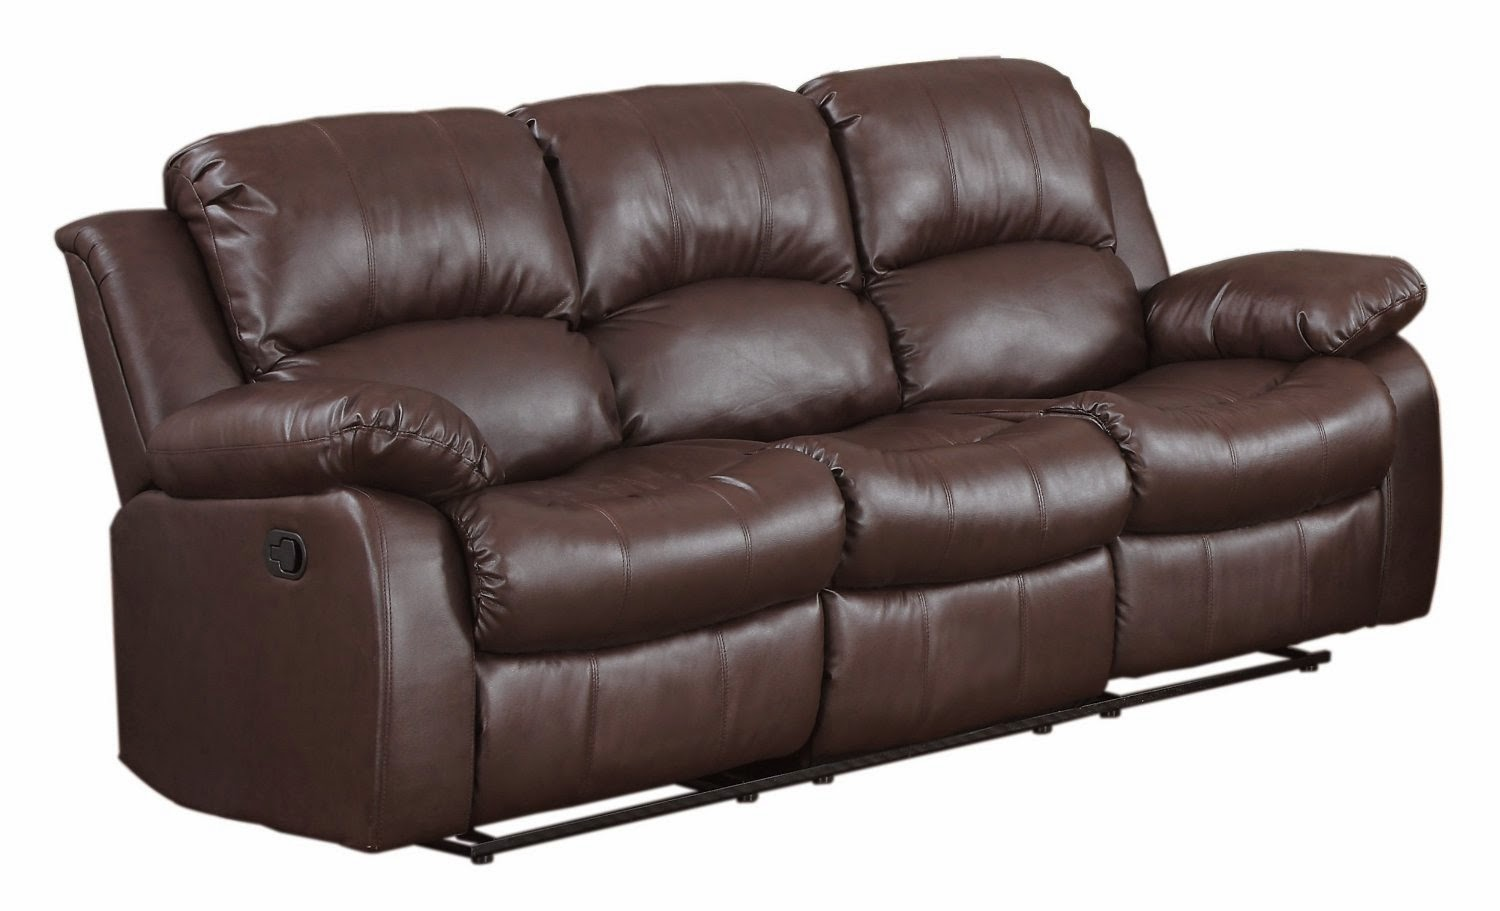 Cheap recliner sofas for sale sectional reclining sofas leather Leather reclining sofa loveseat